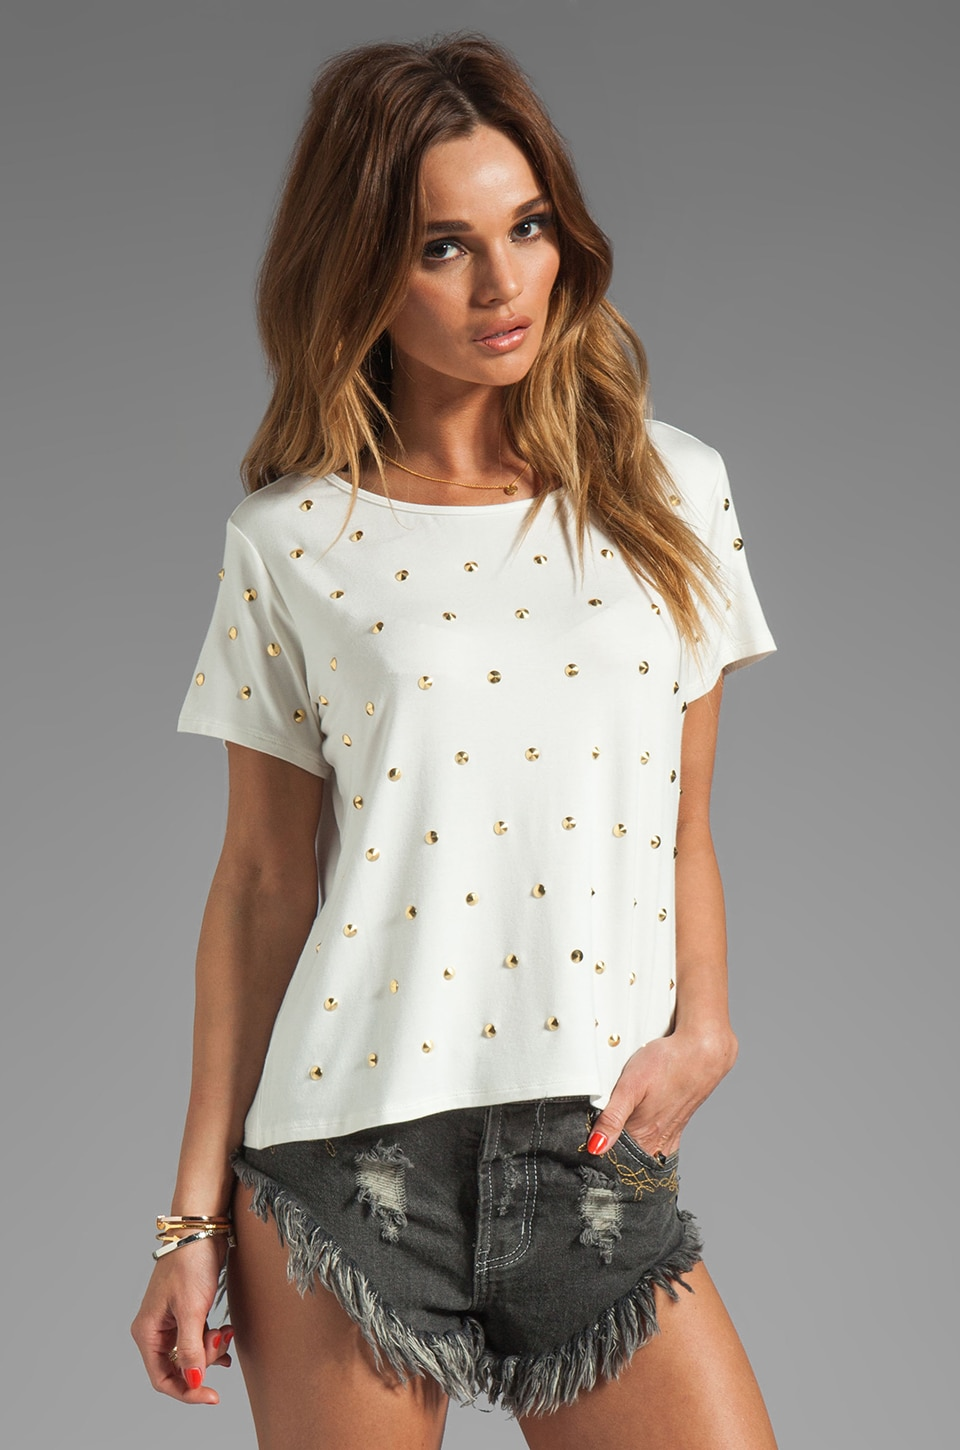 Lovers + Friends Kiss Me Studded Top in White